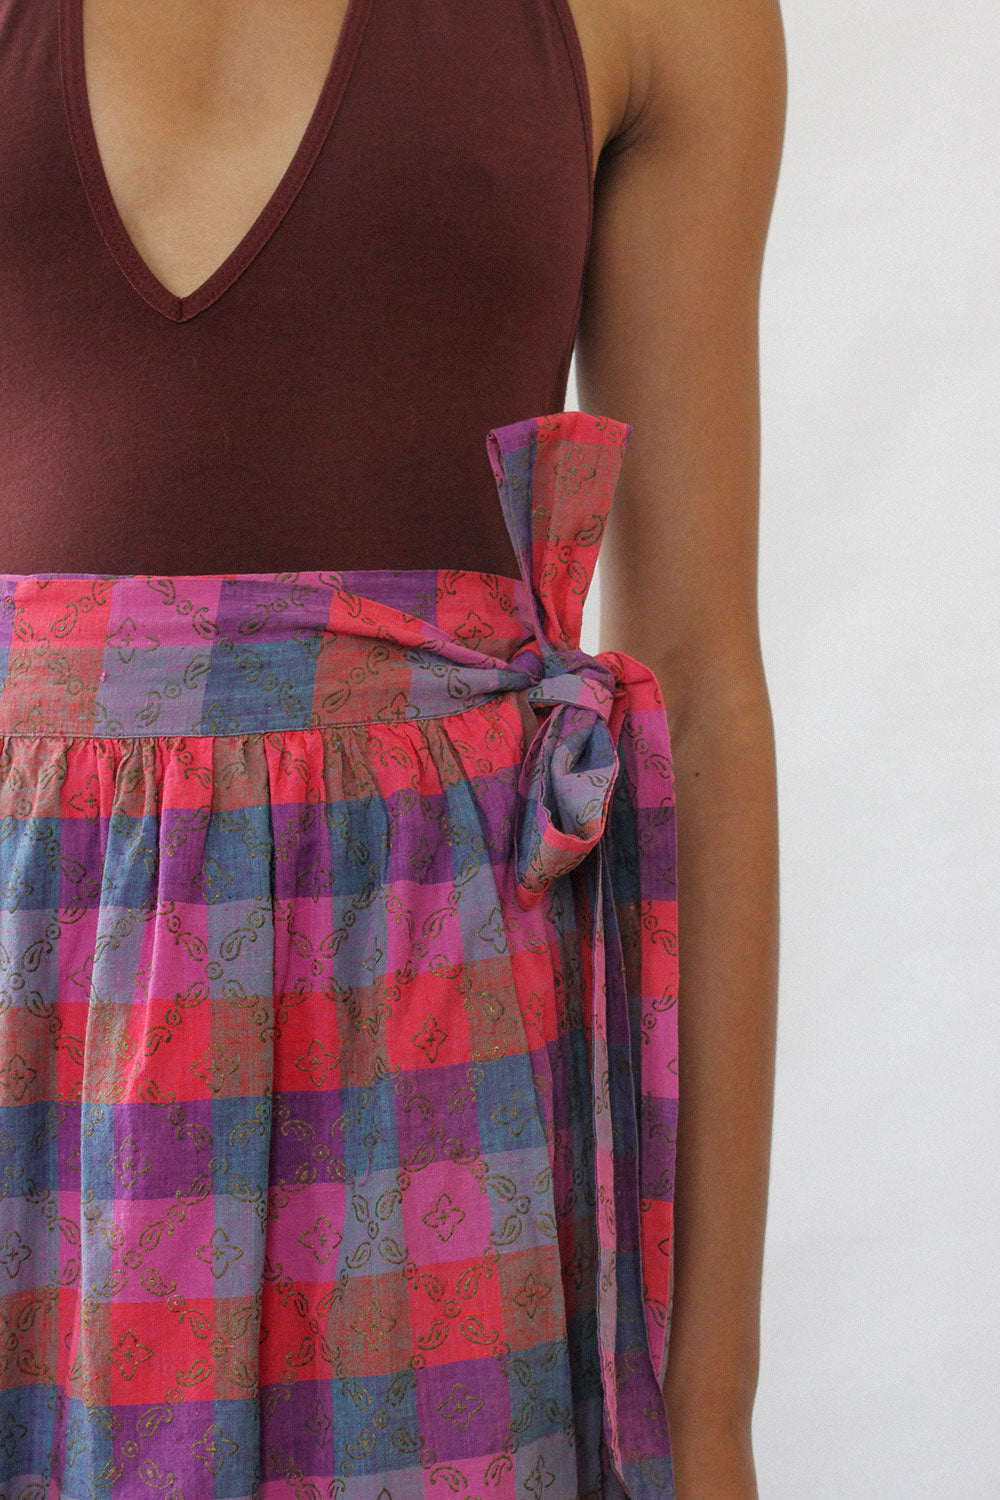 Indian Cotton Jewel Skirt XS/S